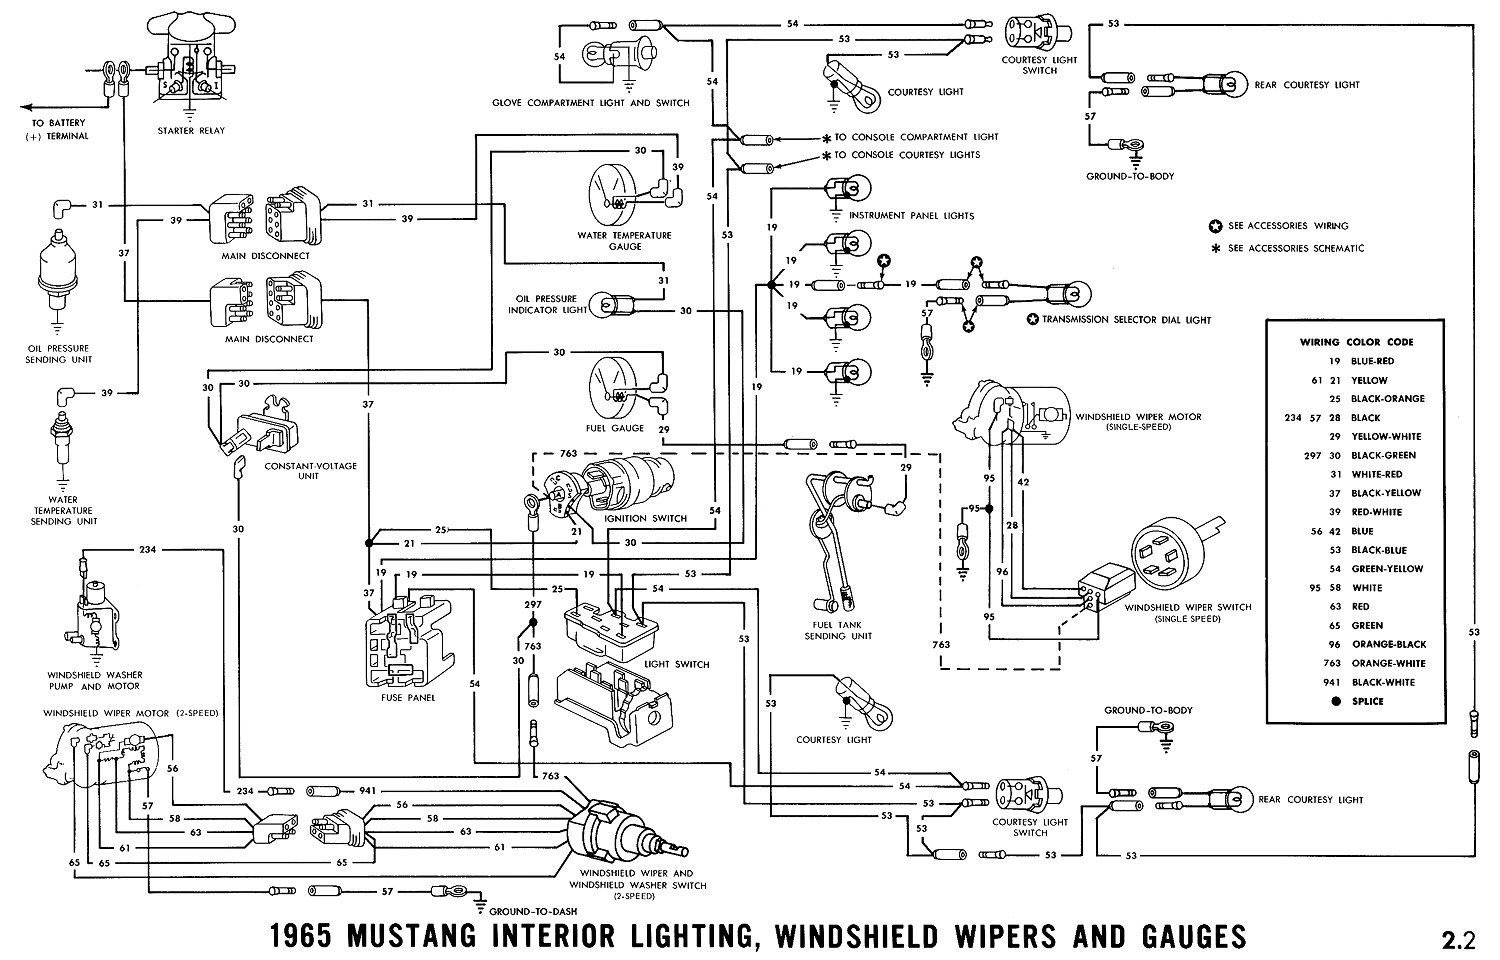 1965g 1965 mustang wiring diagrams average joe restoration 1965 mustang engine wiring harness at virtualis.co